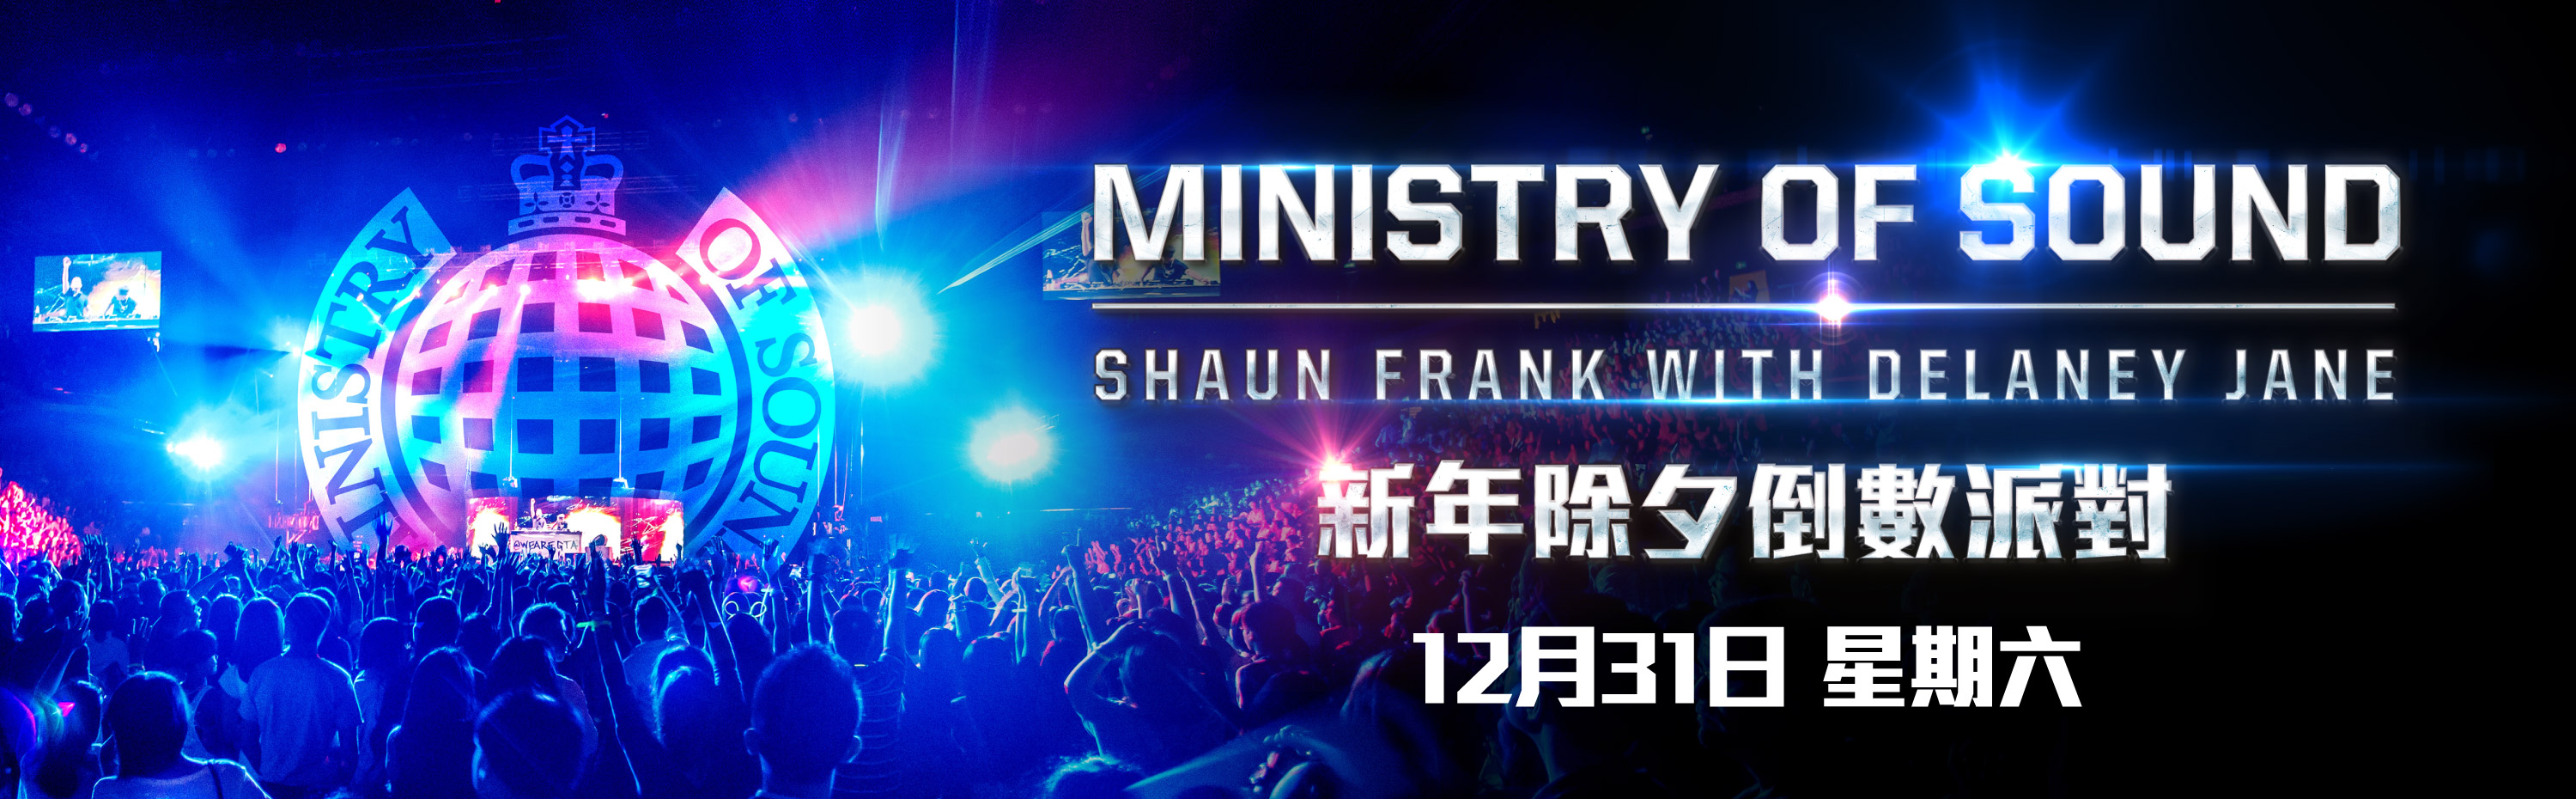 Ministry of Sound新年除夕倒數派對 Shaun Frank with Delaney Jane